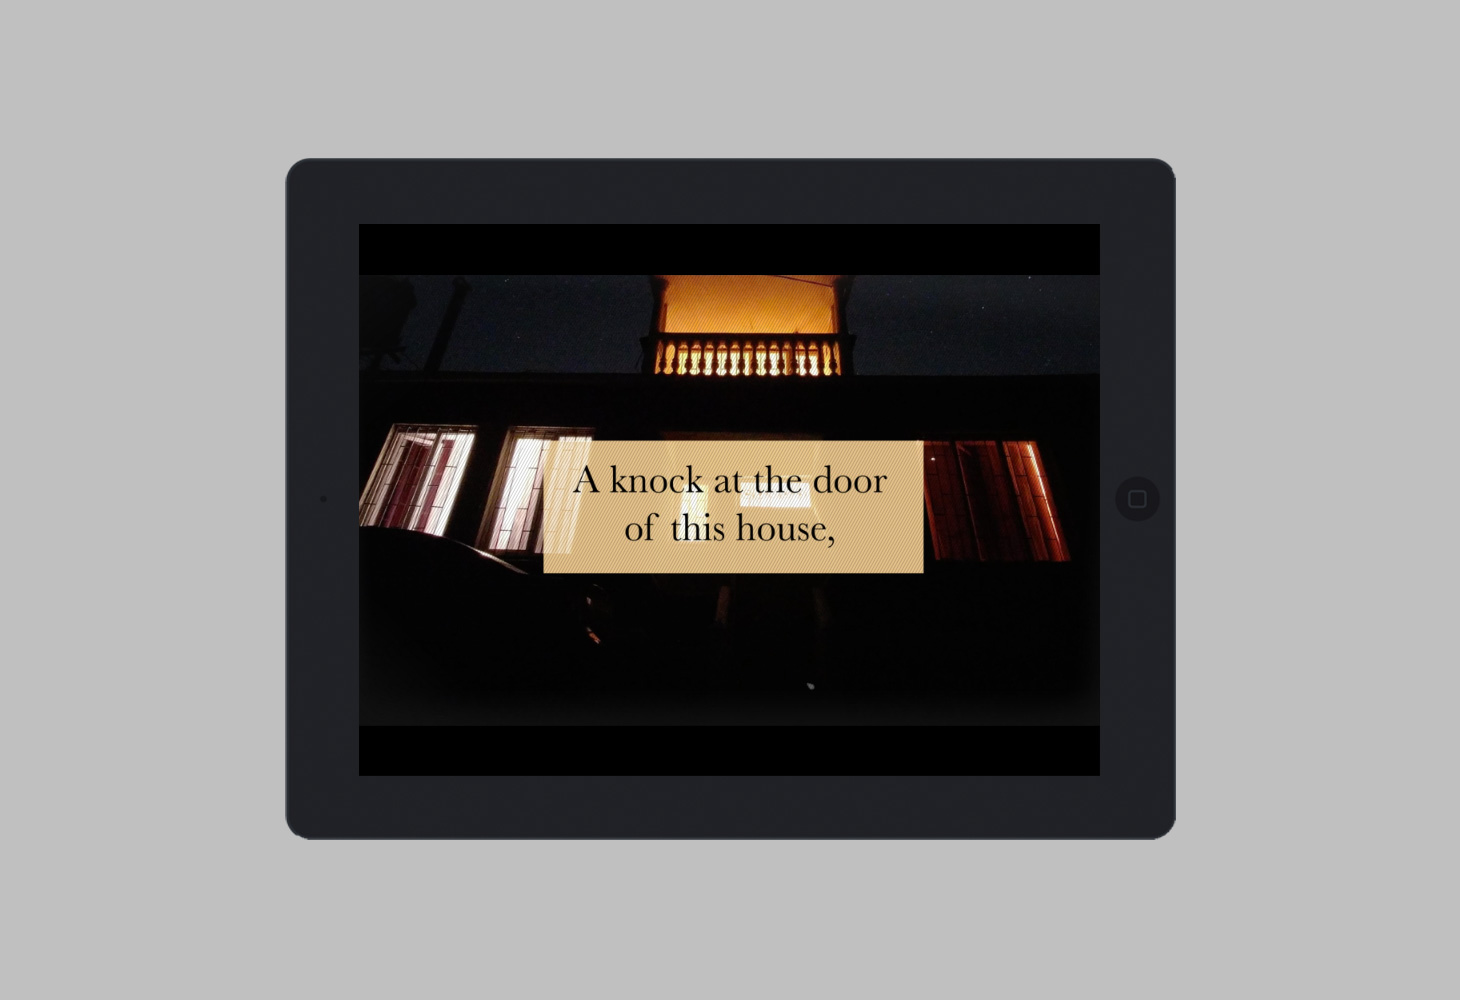 Leave the World Behind - Bloomsbury - A knock on the door